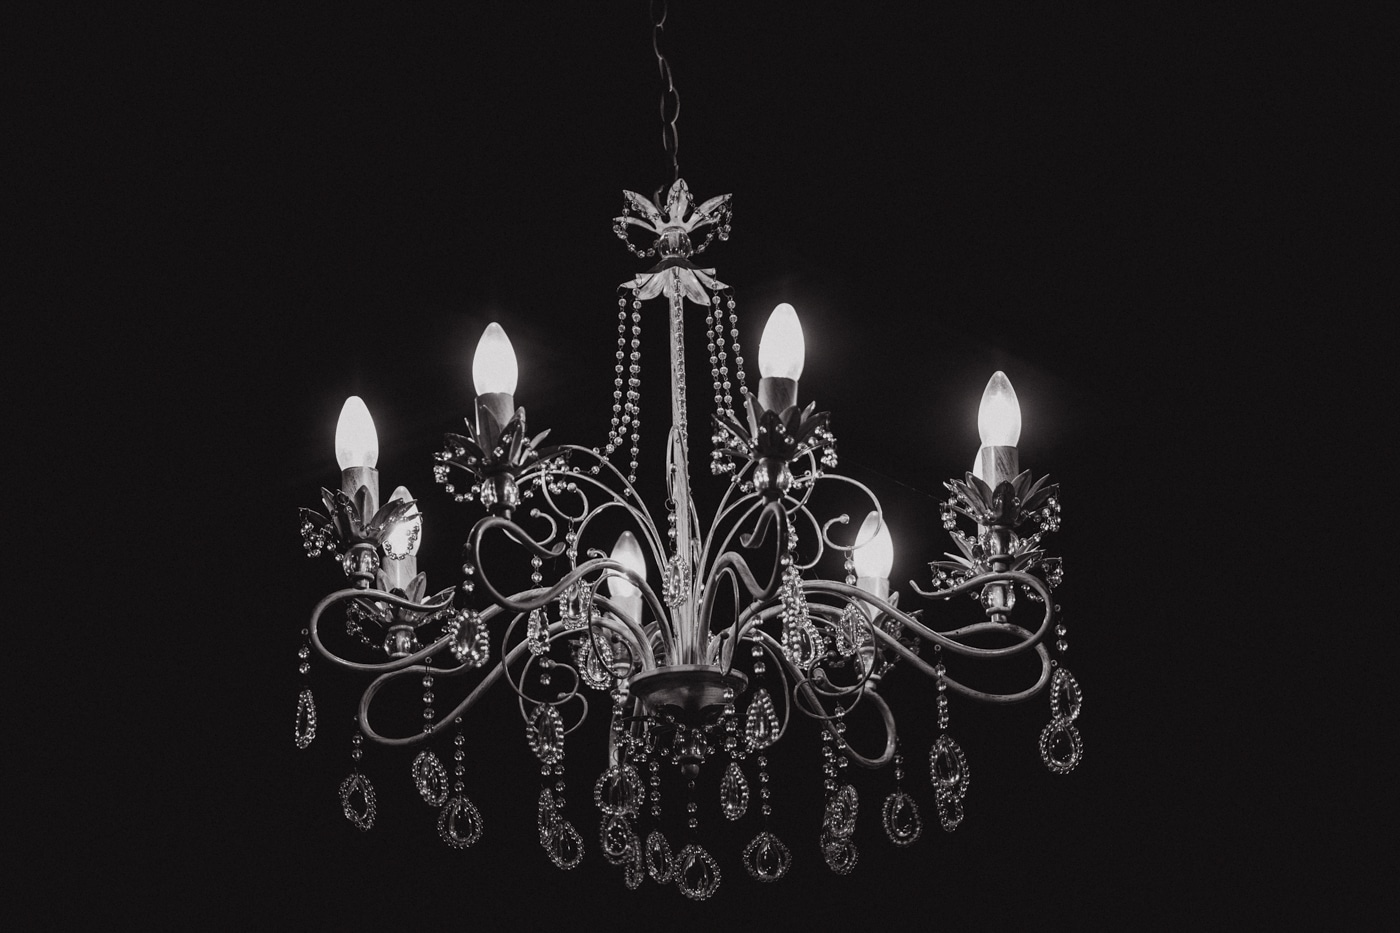 Chandelier with lights in the dark by Josh Wyborn